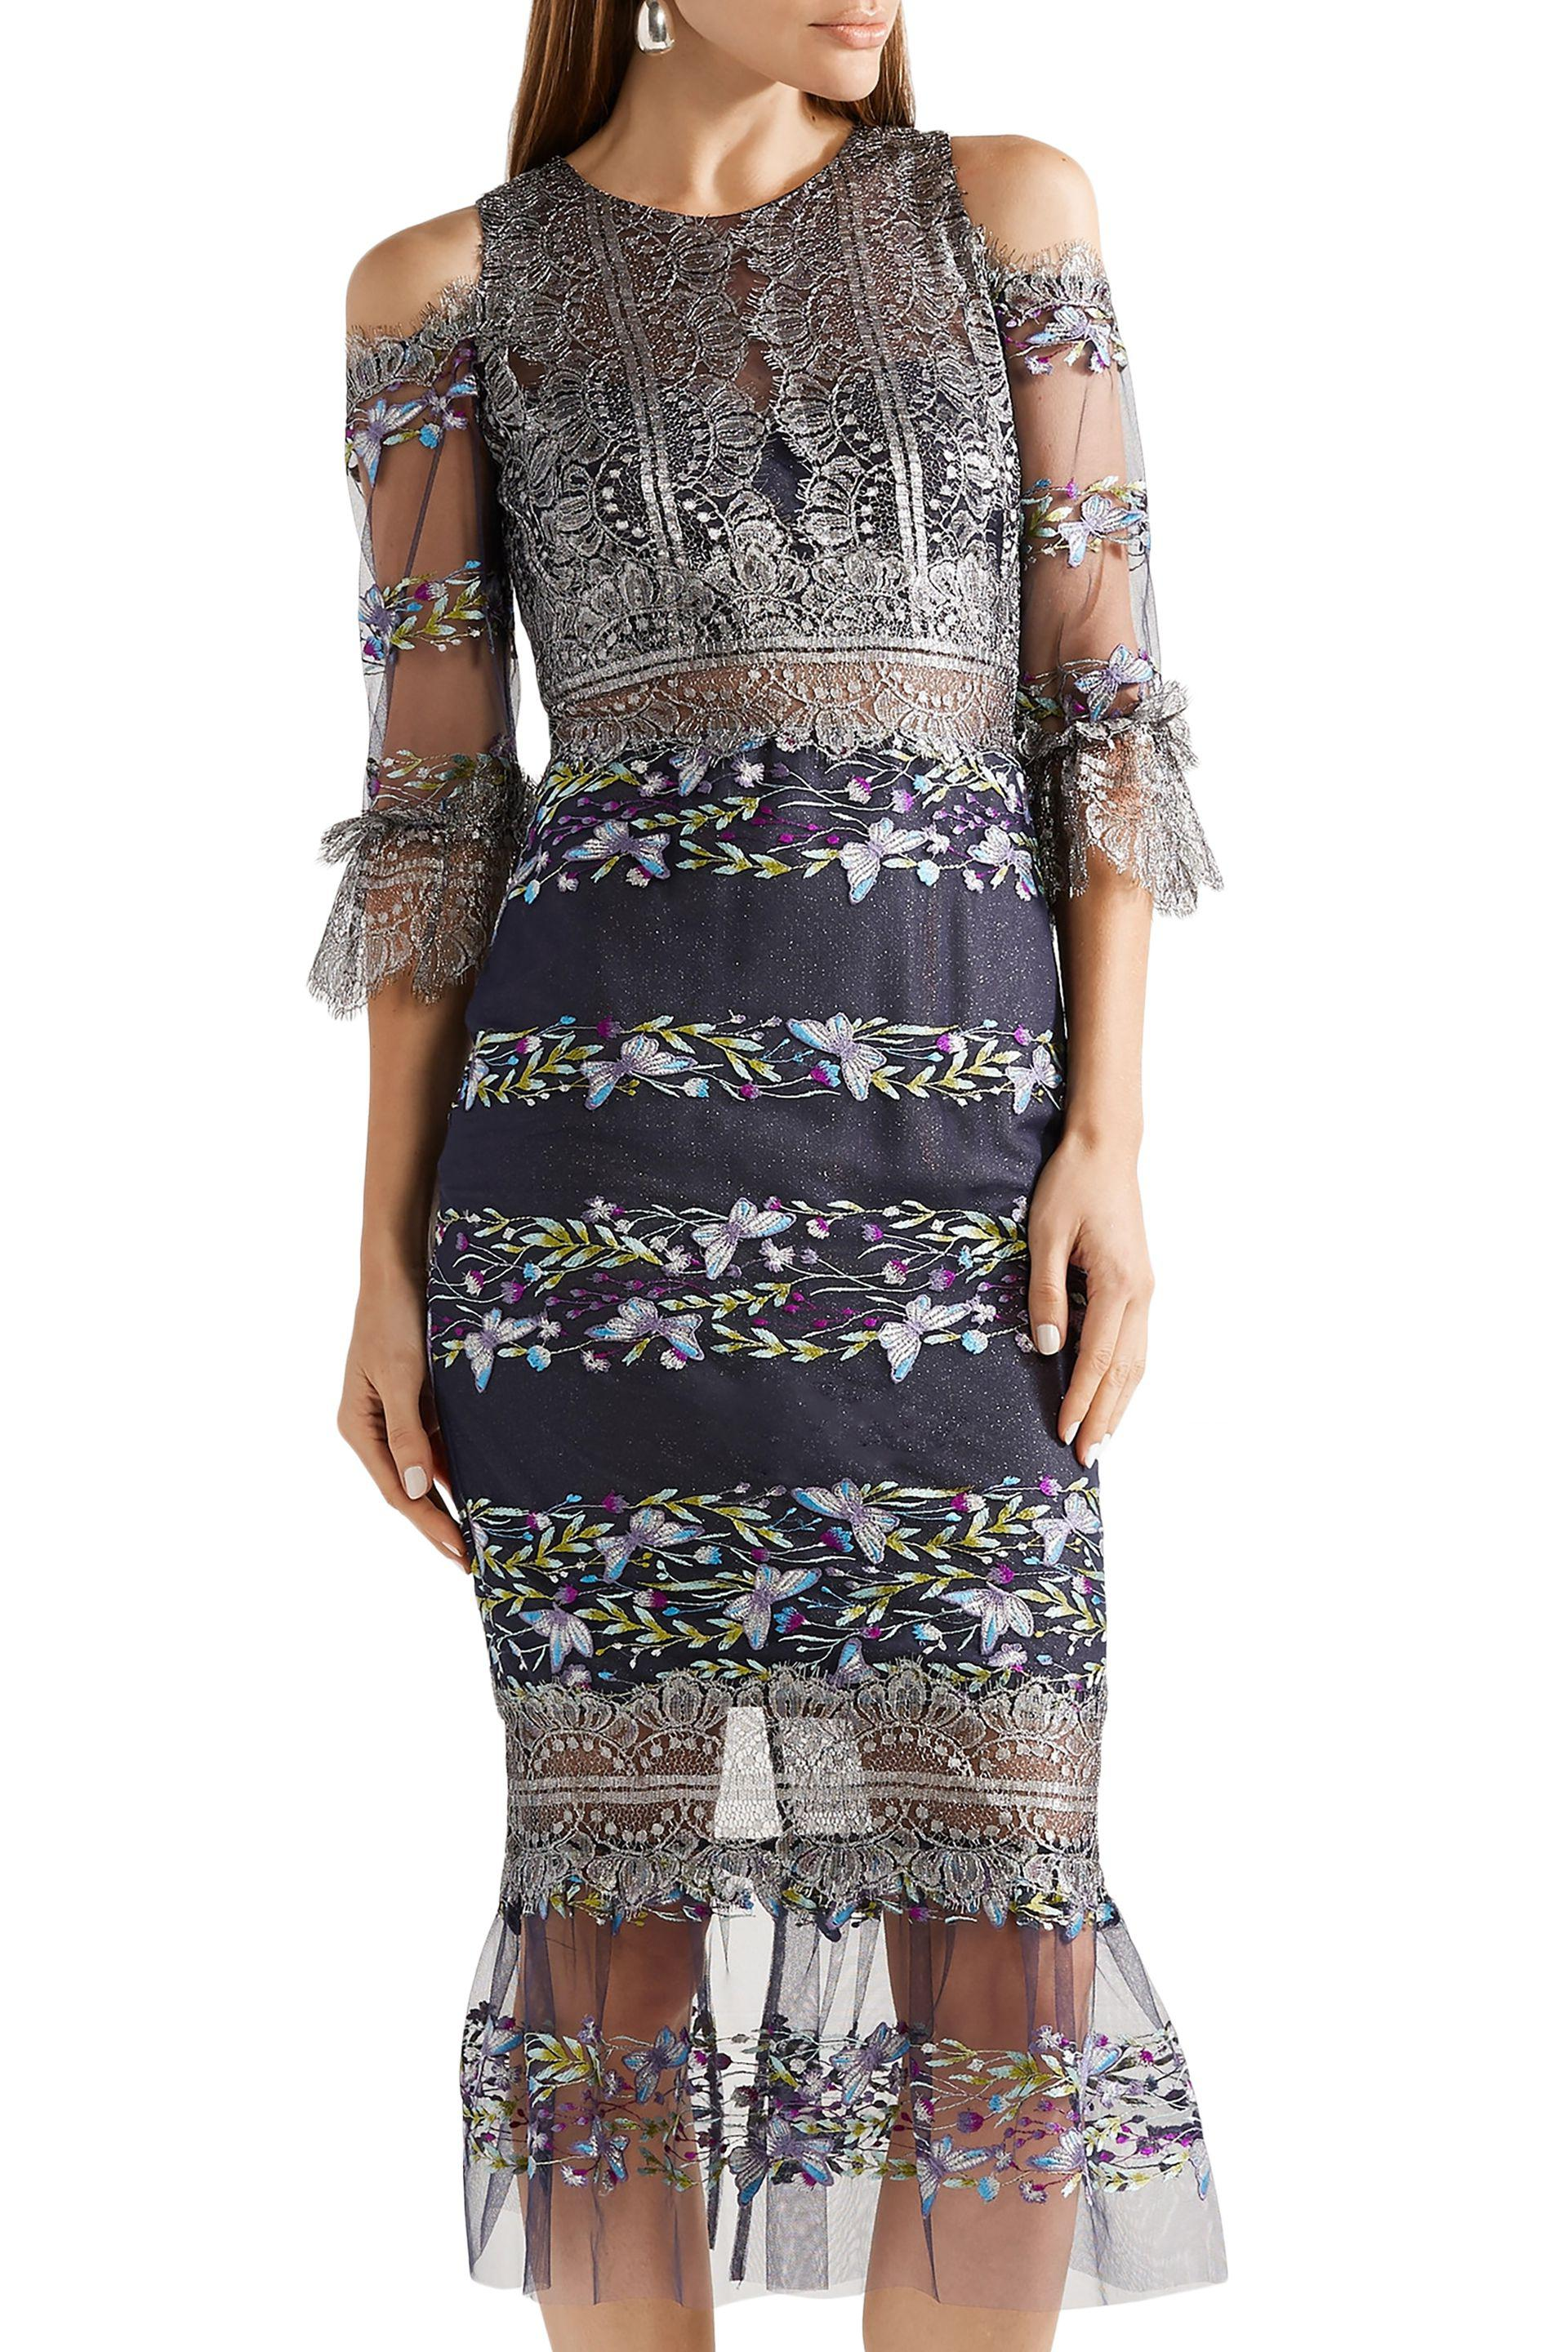 79c31341 Marchesa notte Woman Cold-shoulder Metallic Lace And Embroidered ...